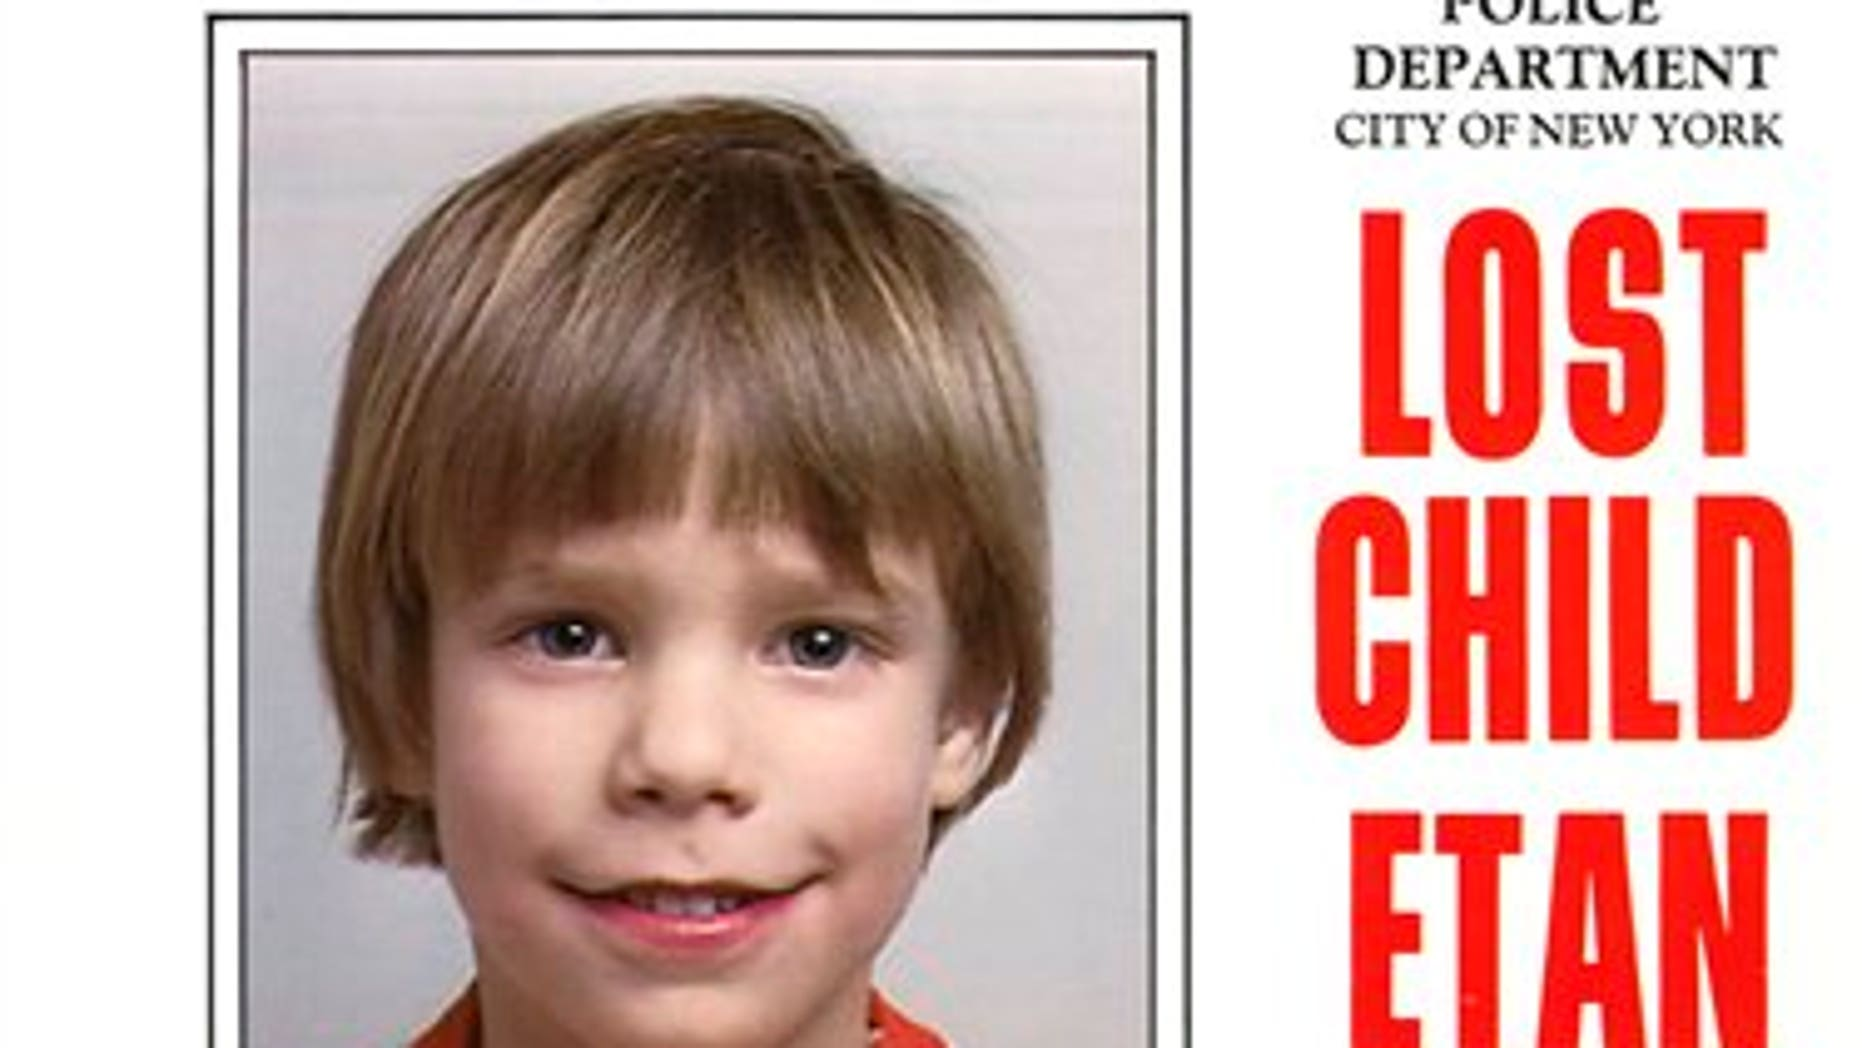 This undated file image provided Friday, May 28, 2010 by Stanley K. Patz shows a flyer distributed by the New York Police Department of Patz's son Etan who vanished in New York on May 25, 1979.